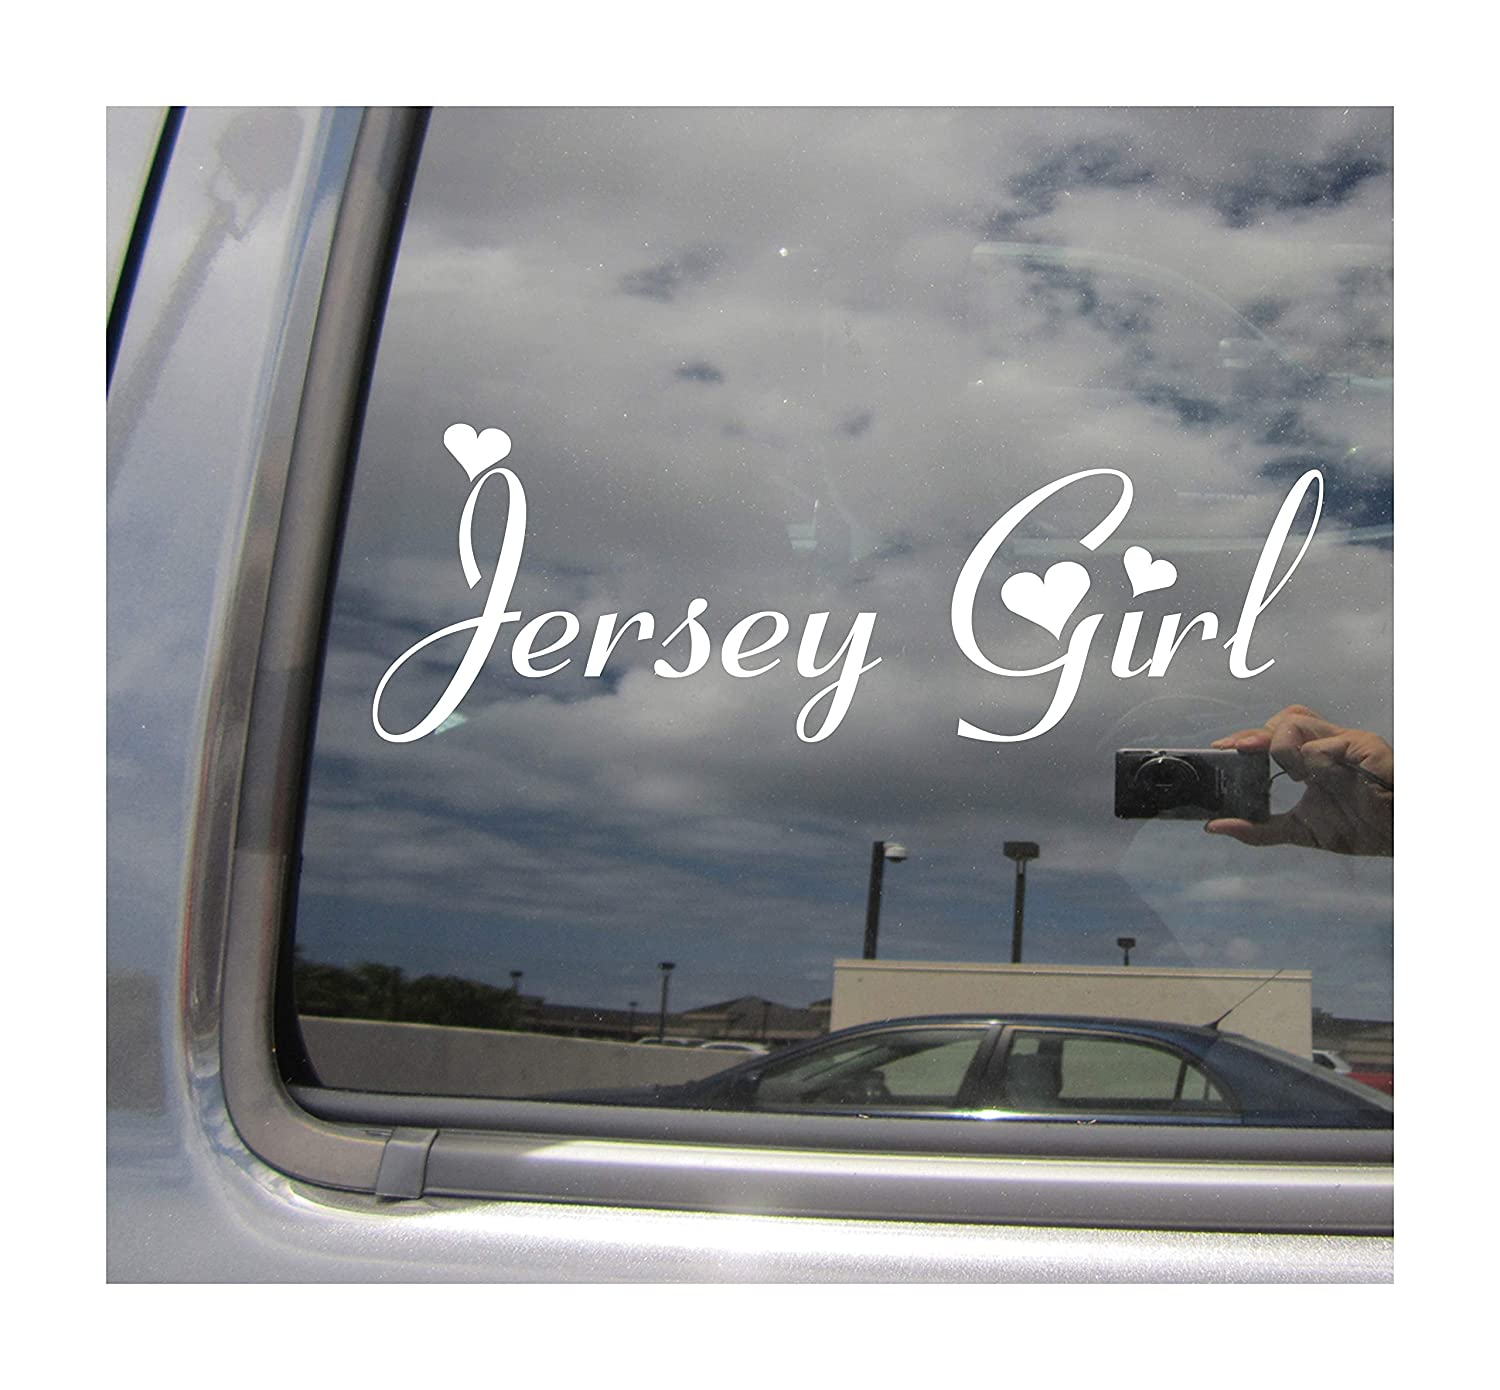 Right now decals jersey girl new jersey girly cars trucks moped helmet hard hat auto automotive craft laptop vinyl decal store window wall sticker 10113